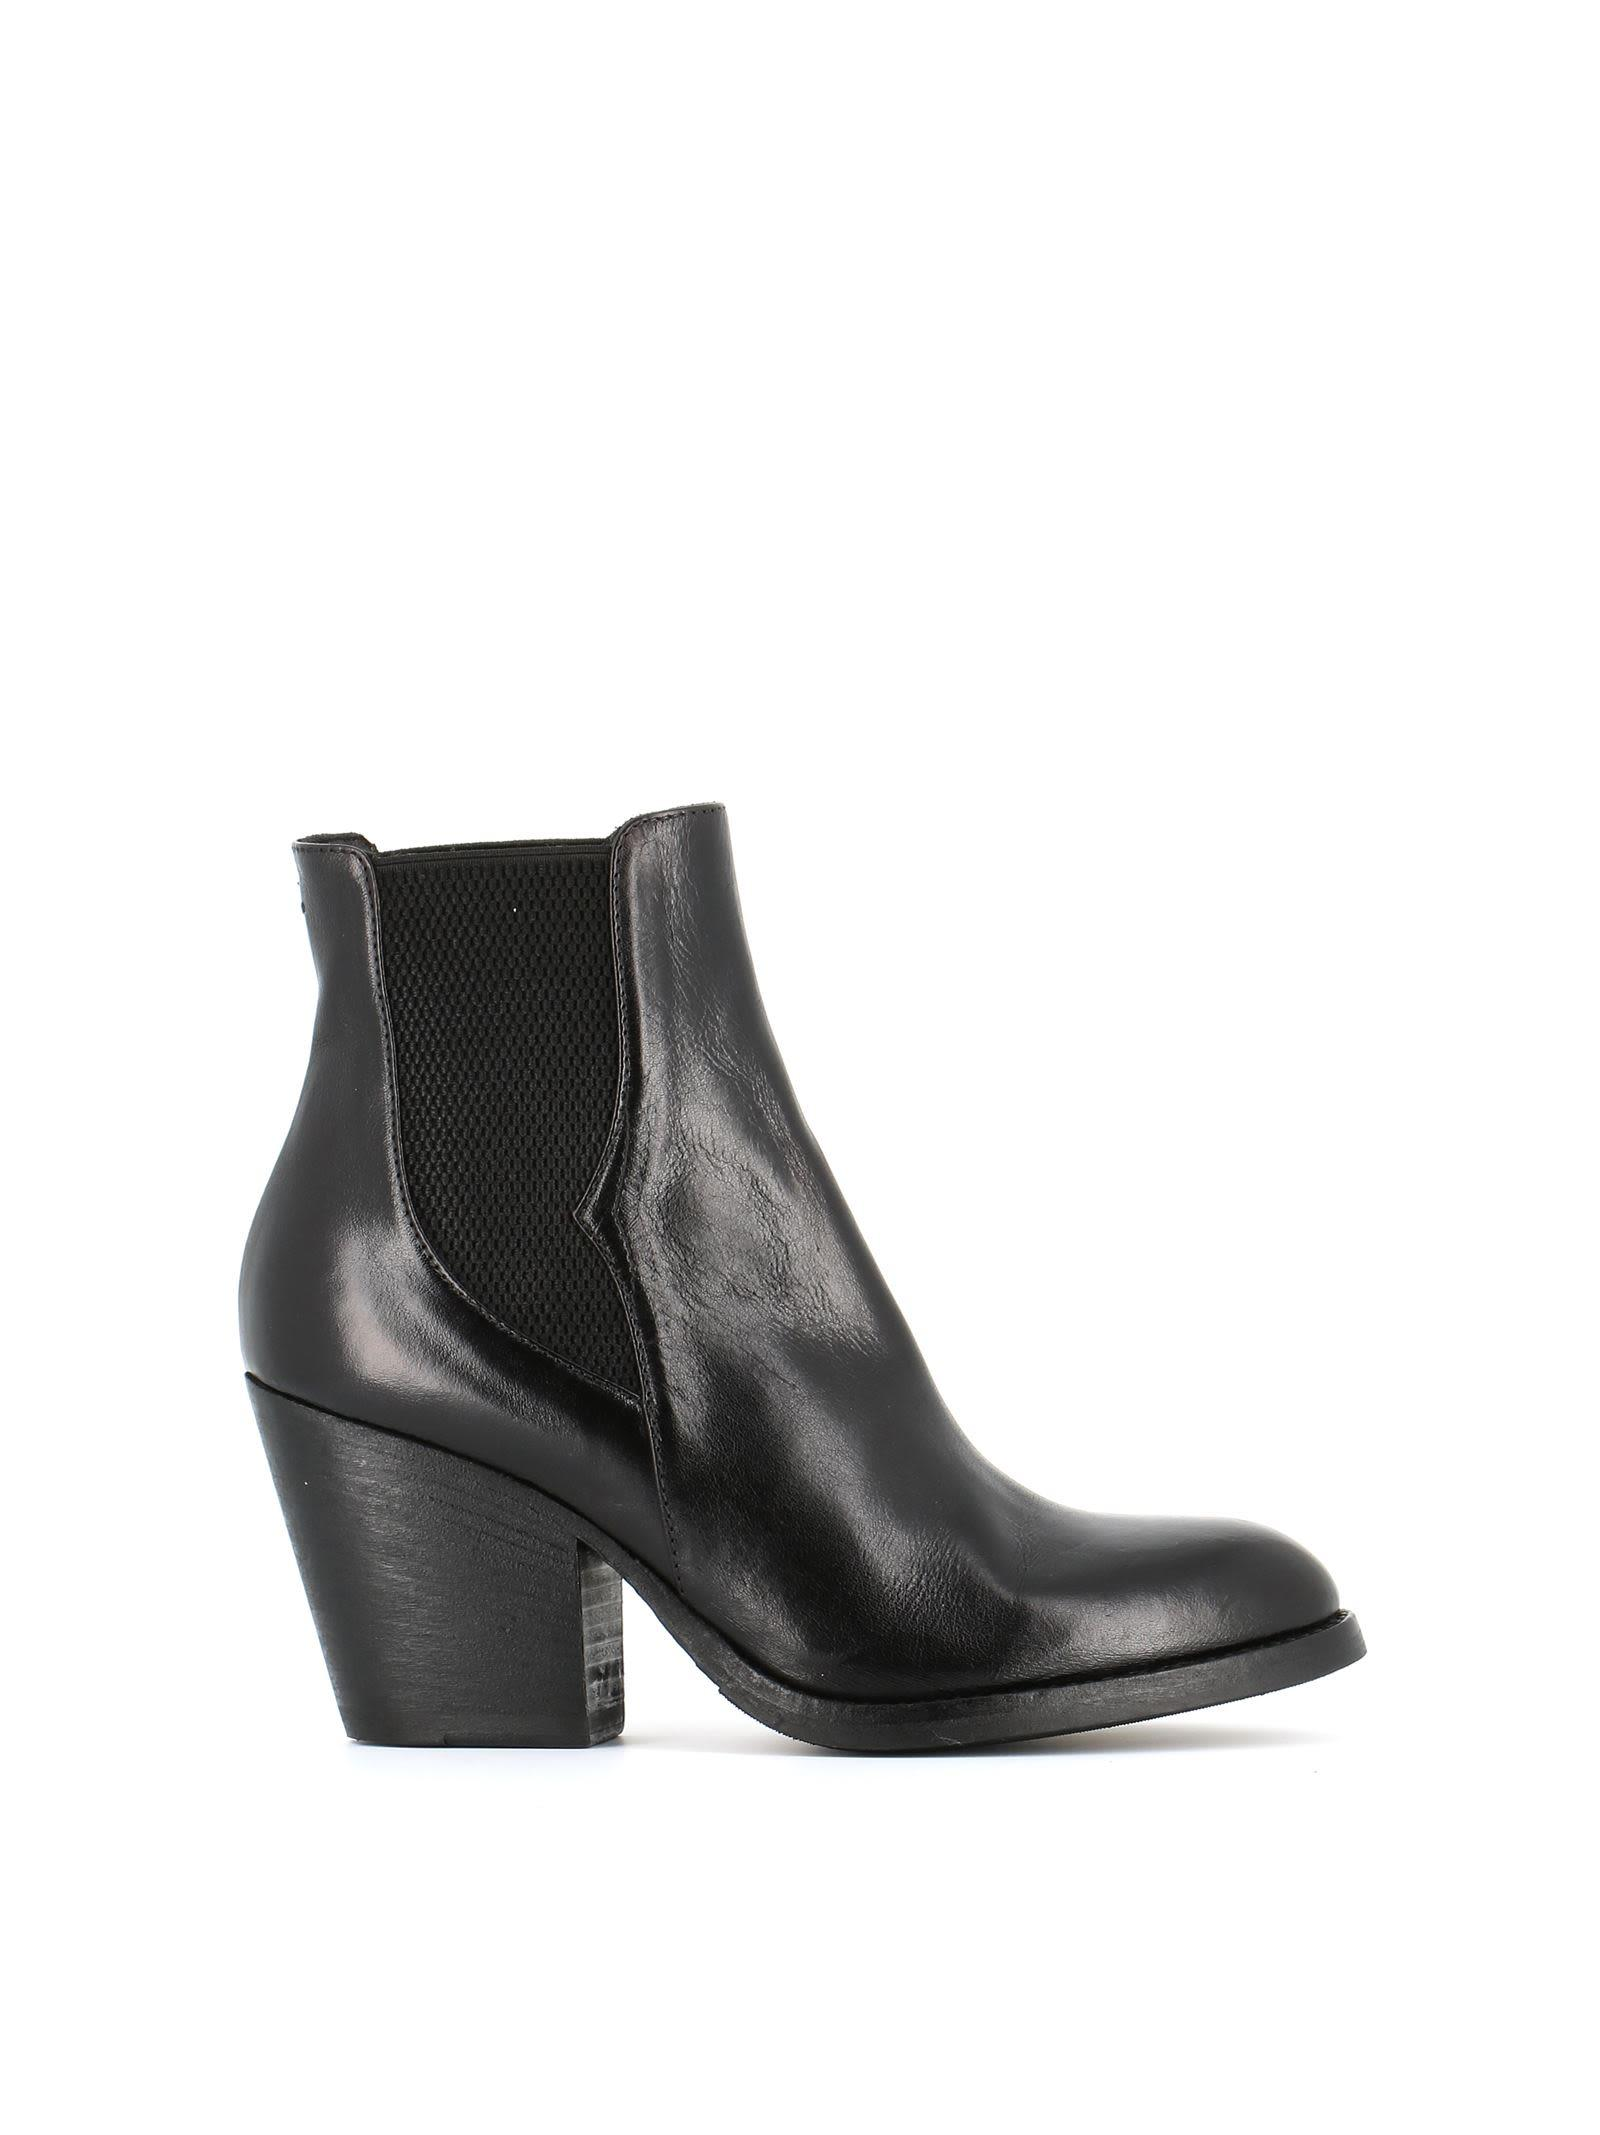 Pantanetti 10689d Ankle Boots In Black